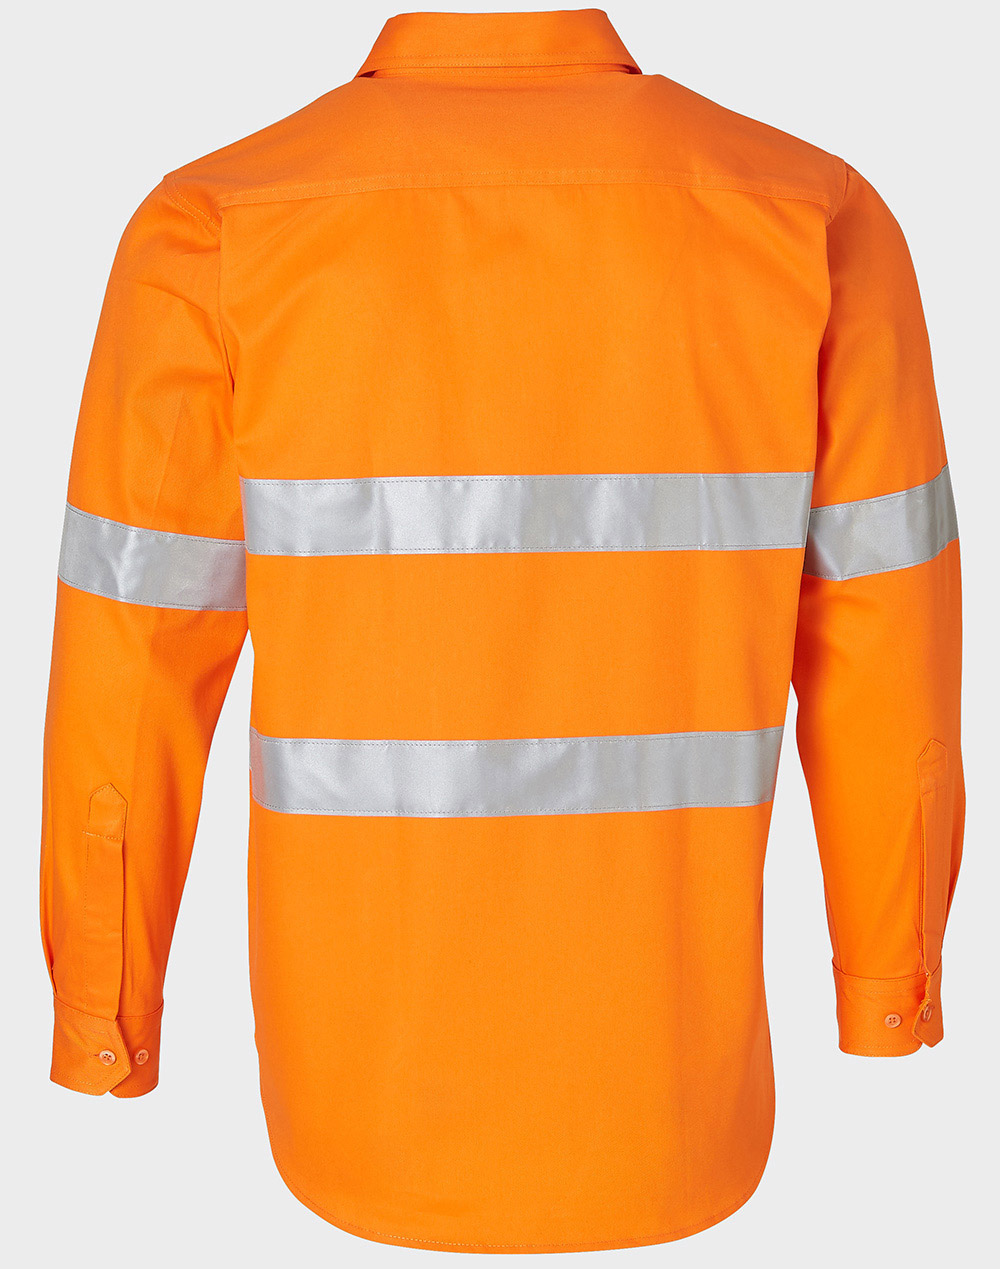 https://s3-ap-southeast-1.amazonaws.com/ws-imgs/WORKWEAR/SW52_Orange_Back.jpg